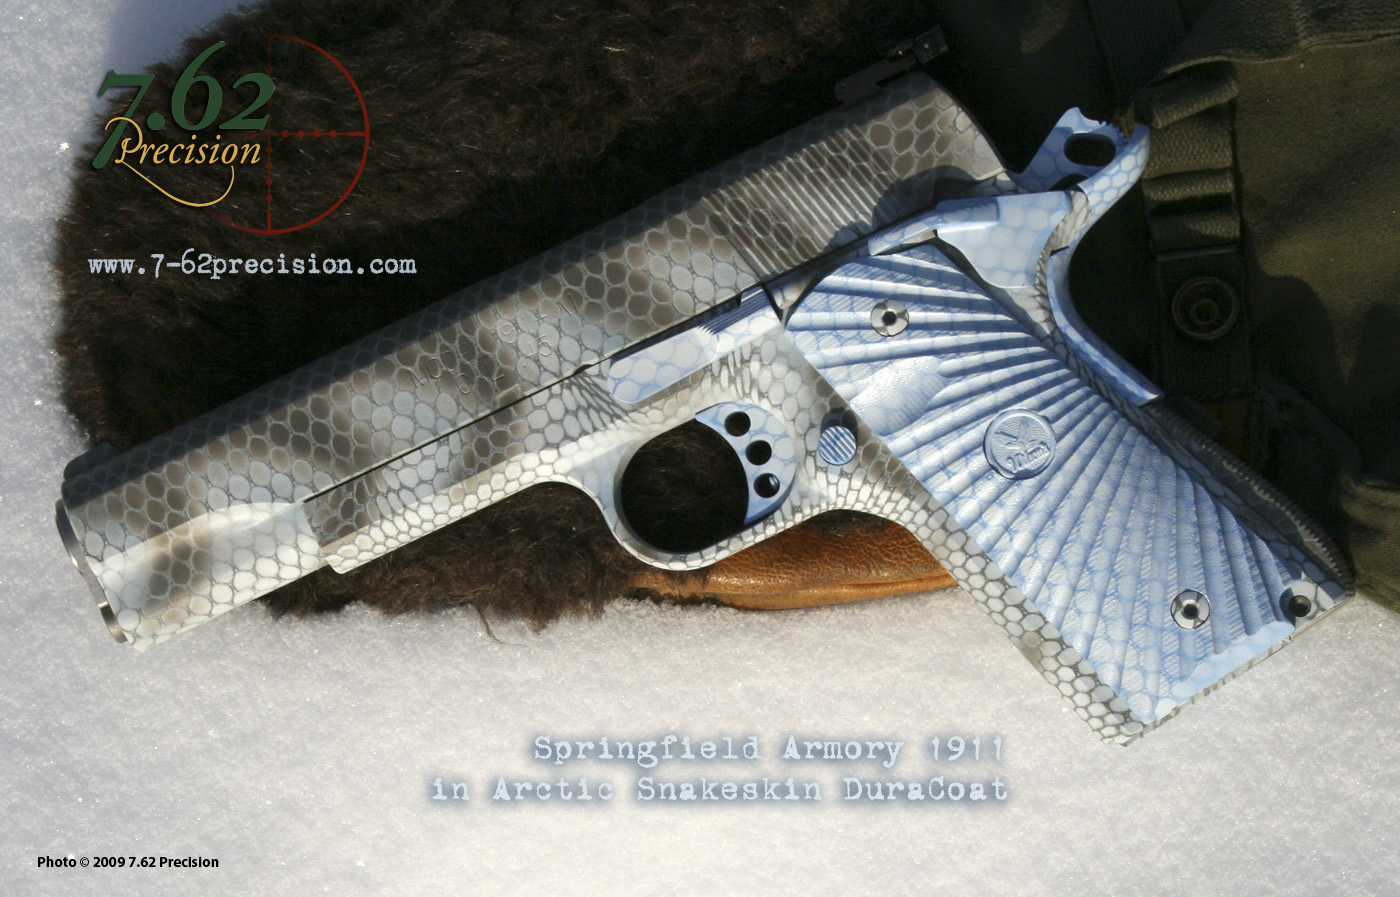 Springfield Armory 1911-A1 in Arctic Operator Snakeskin finish